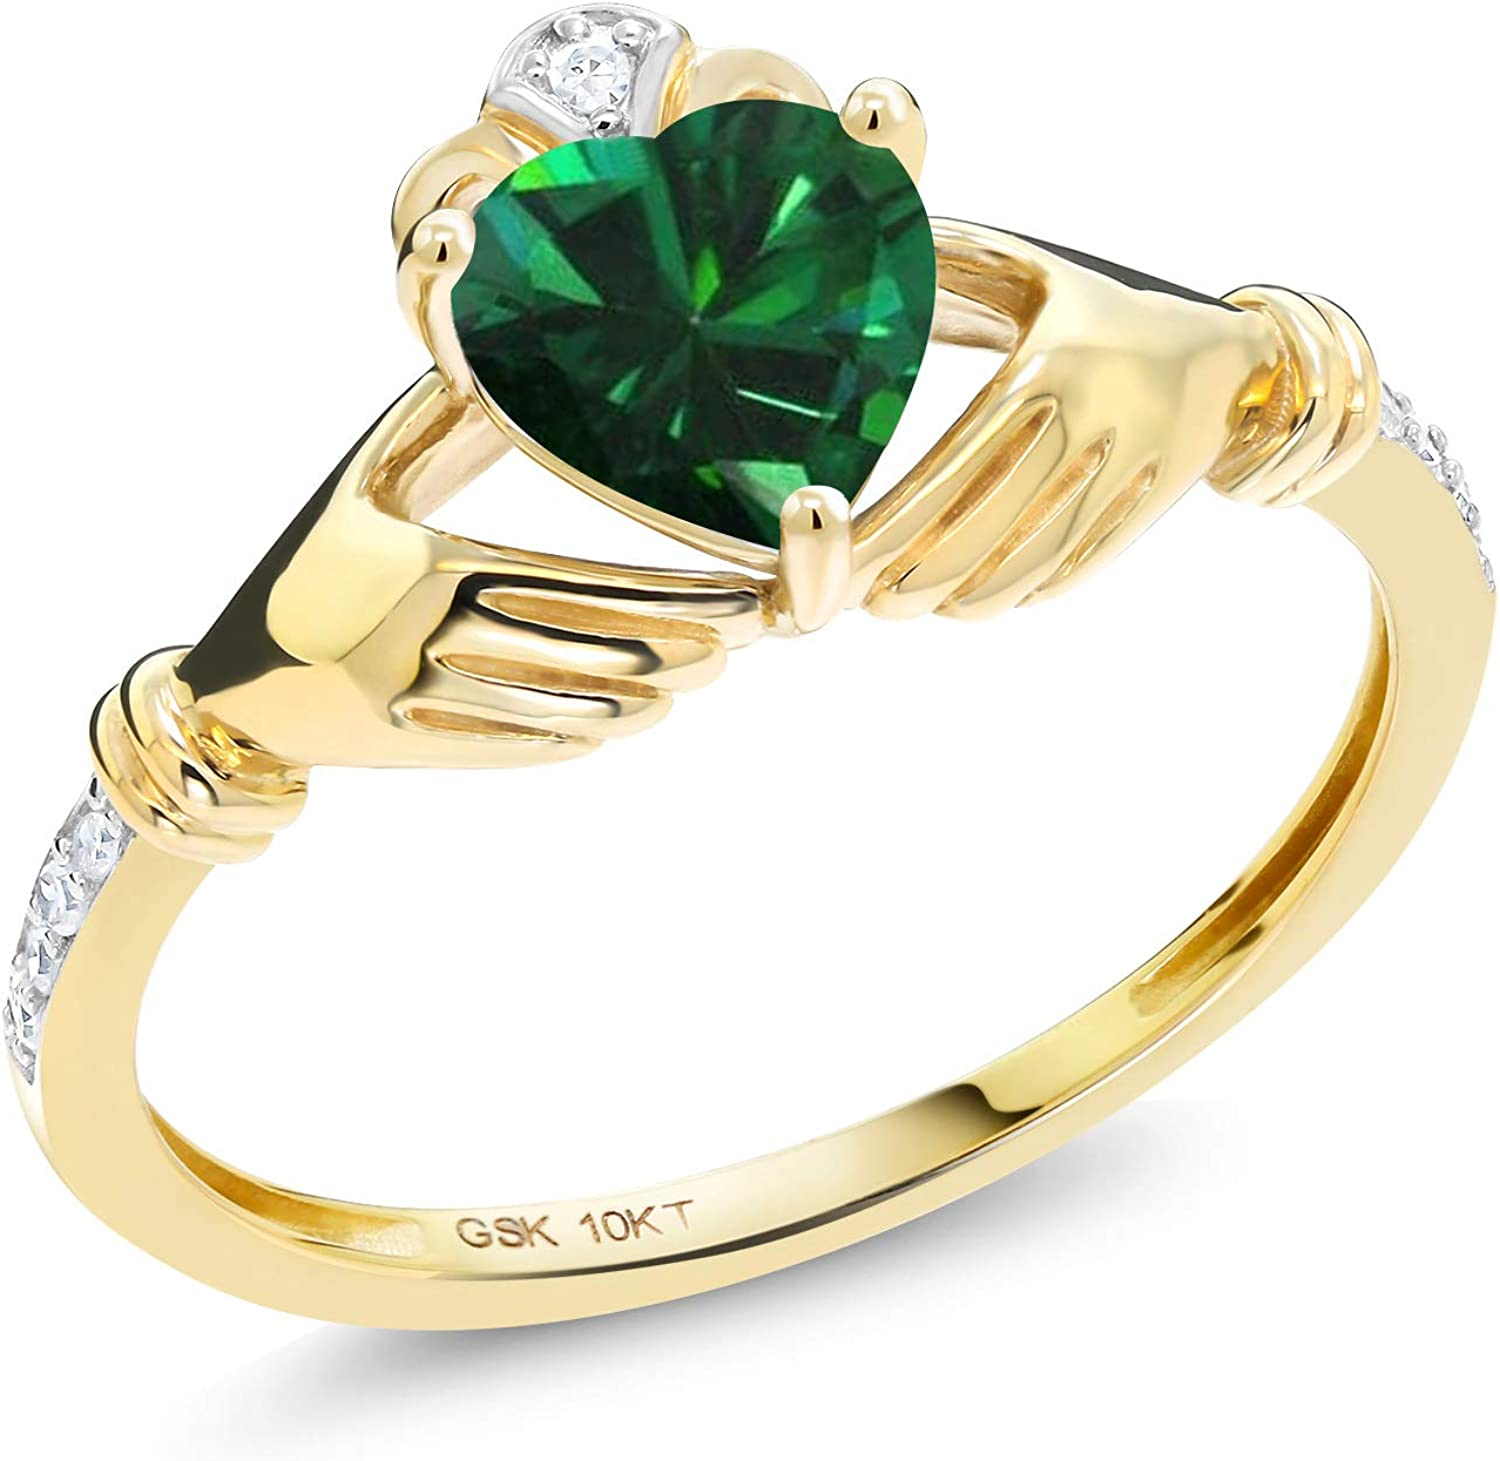 Gem Stone King 10K Yellow Gold Simulated Selling Diamo and Lowest price challenge Green Emerald